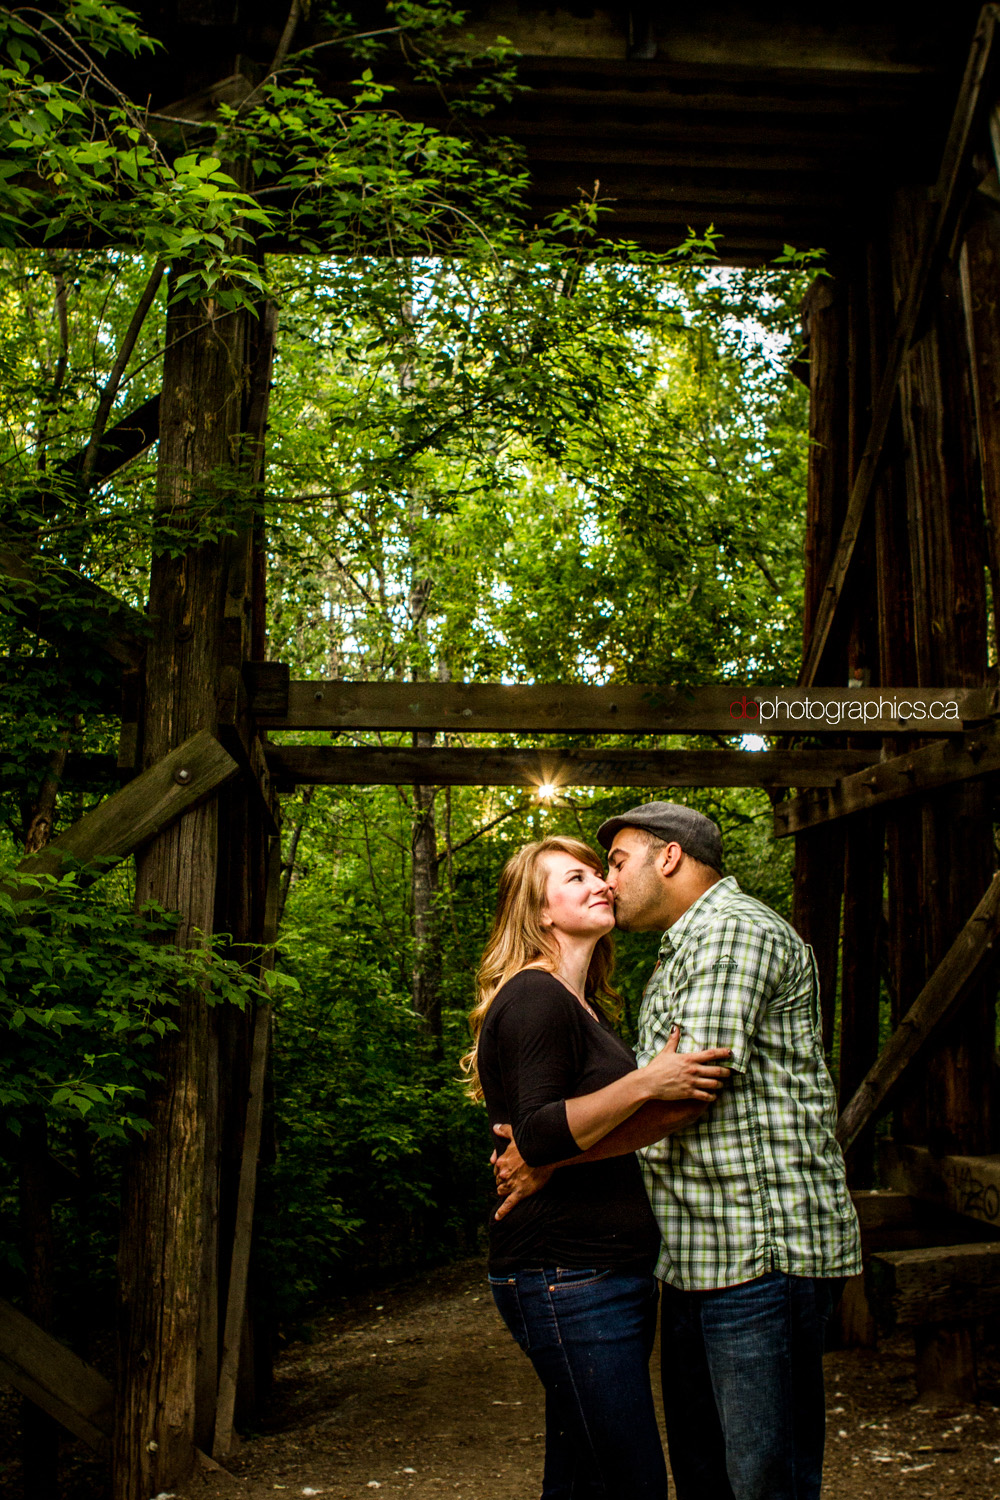 Amy & Ian Engagement Shoot - 20140626 - 0048.jpg